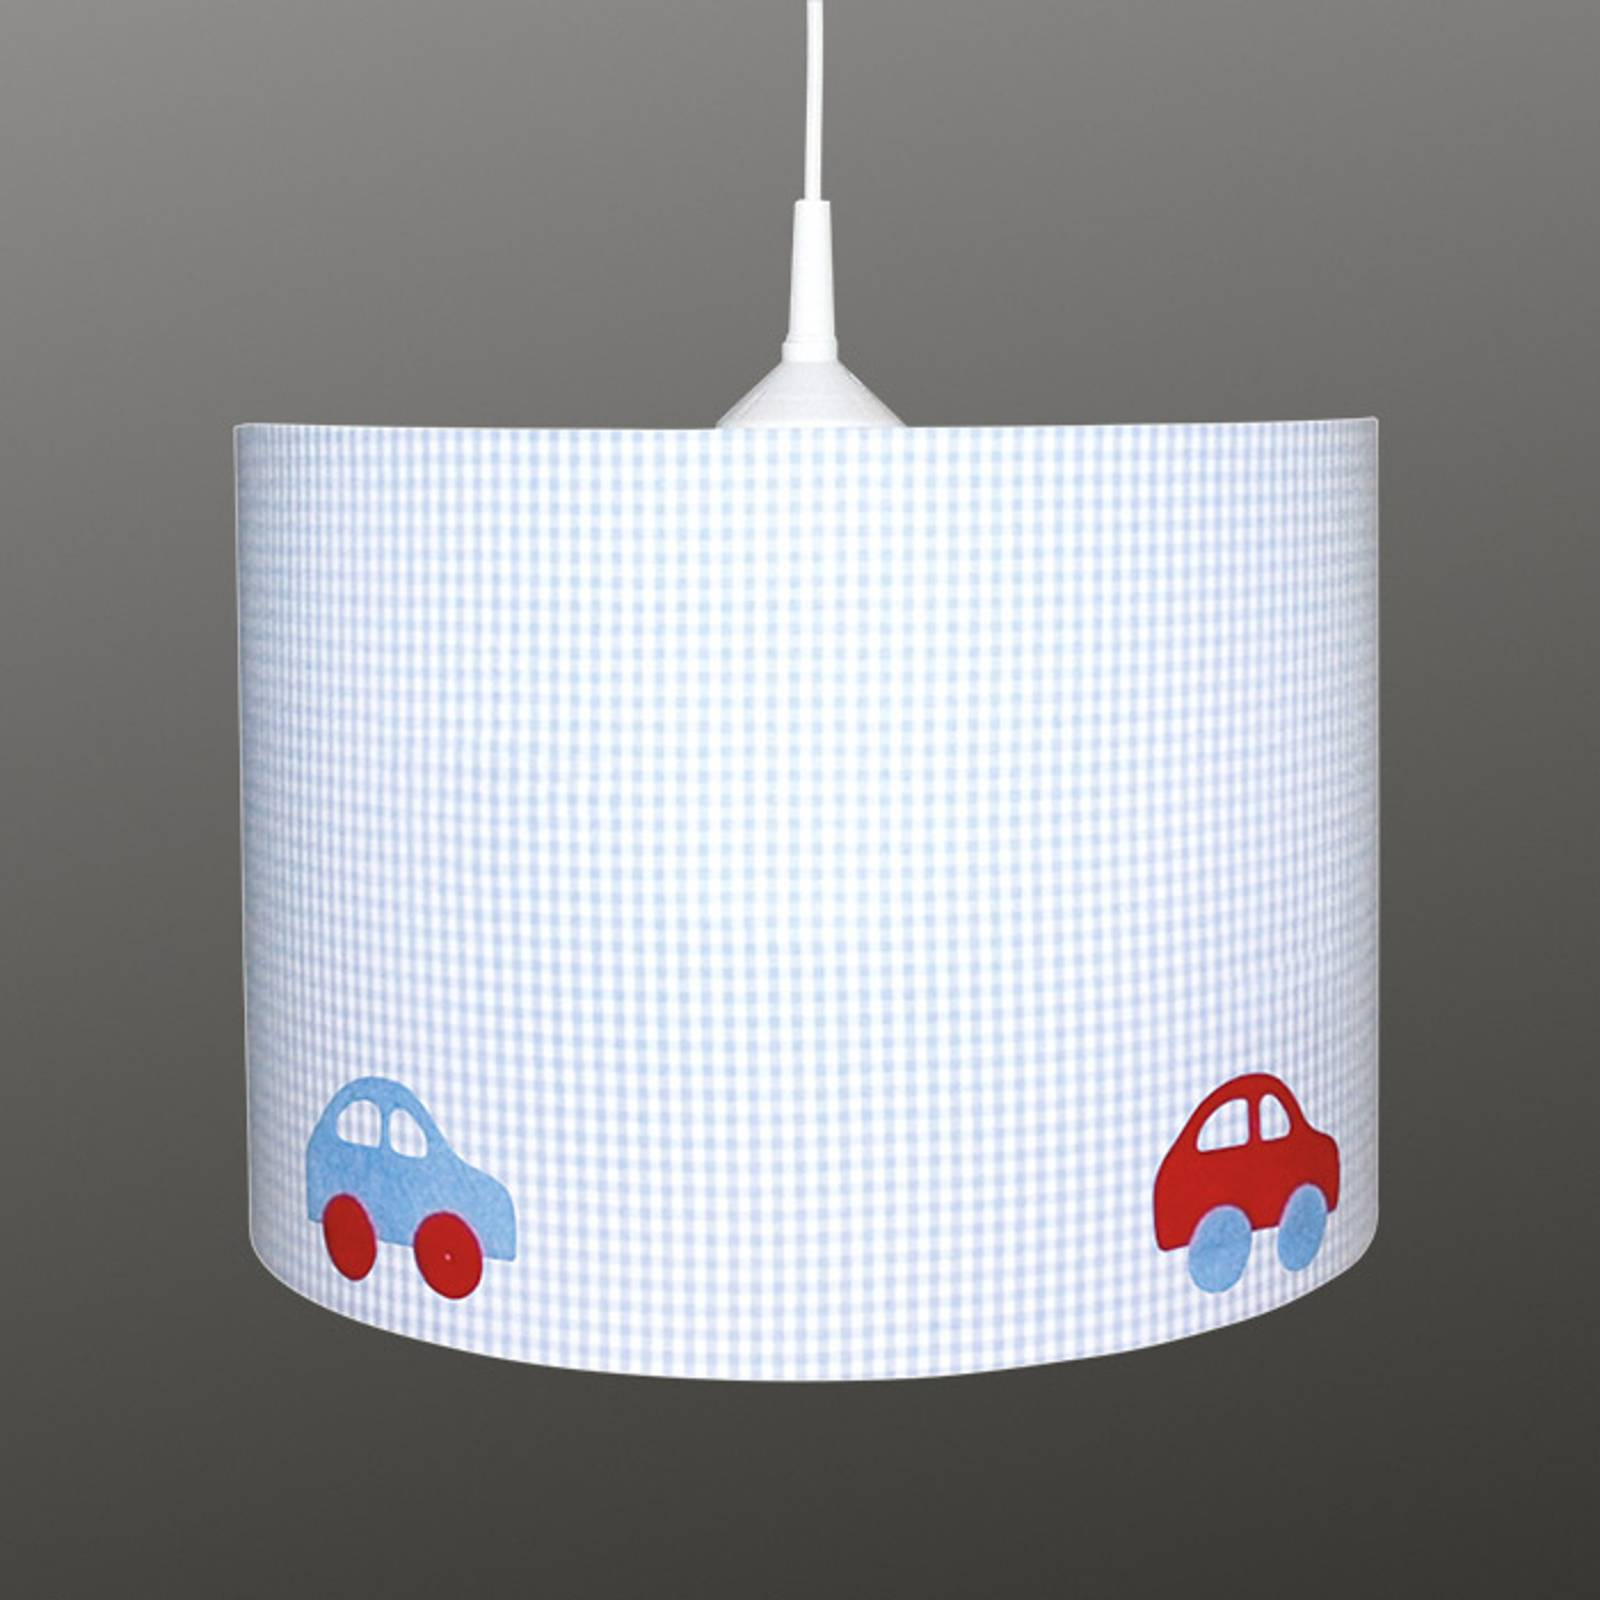 Sweet Car pendant light from Waldi-Leuchten